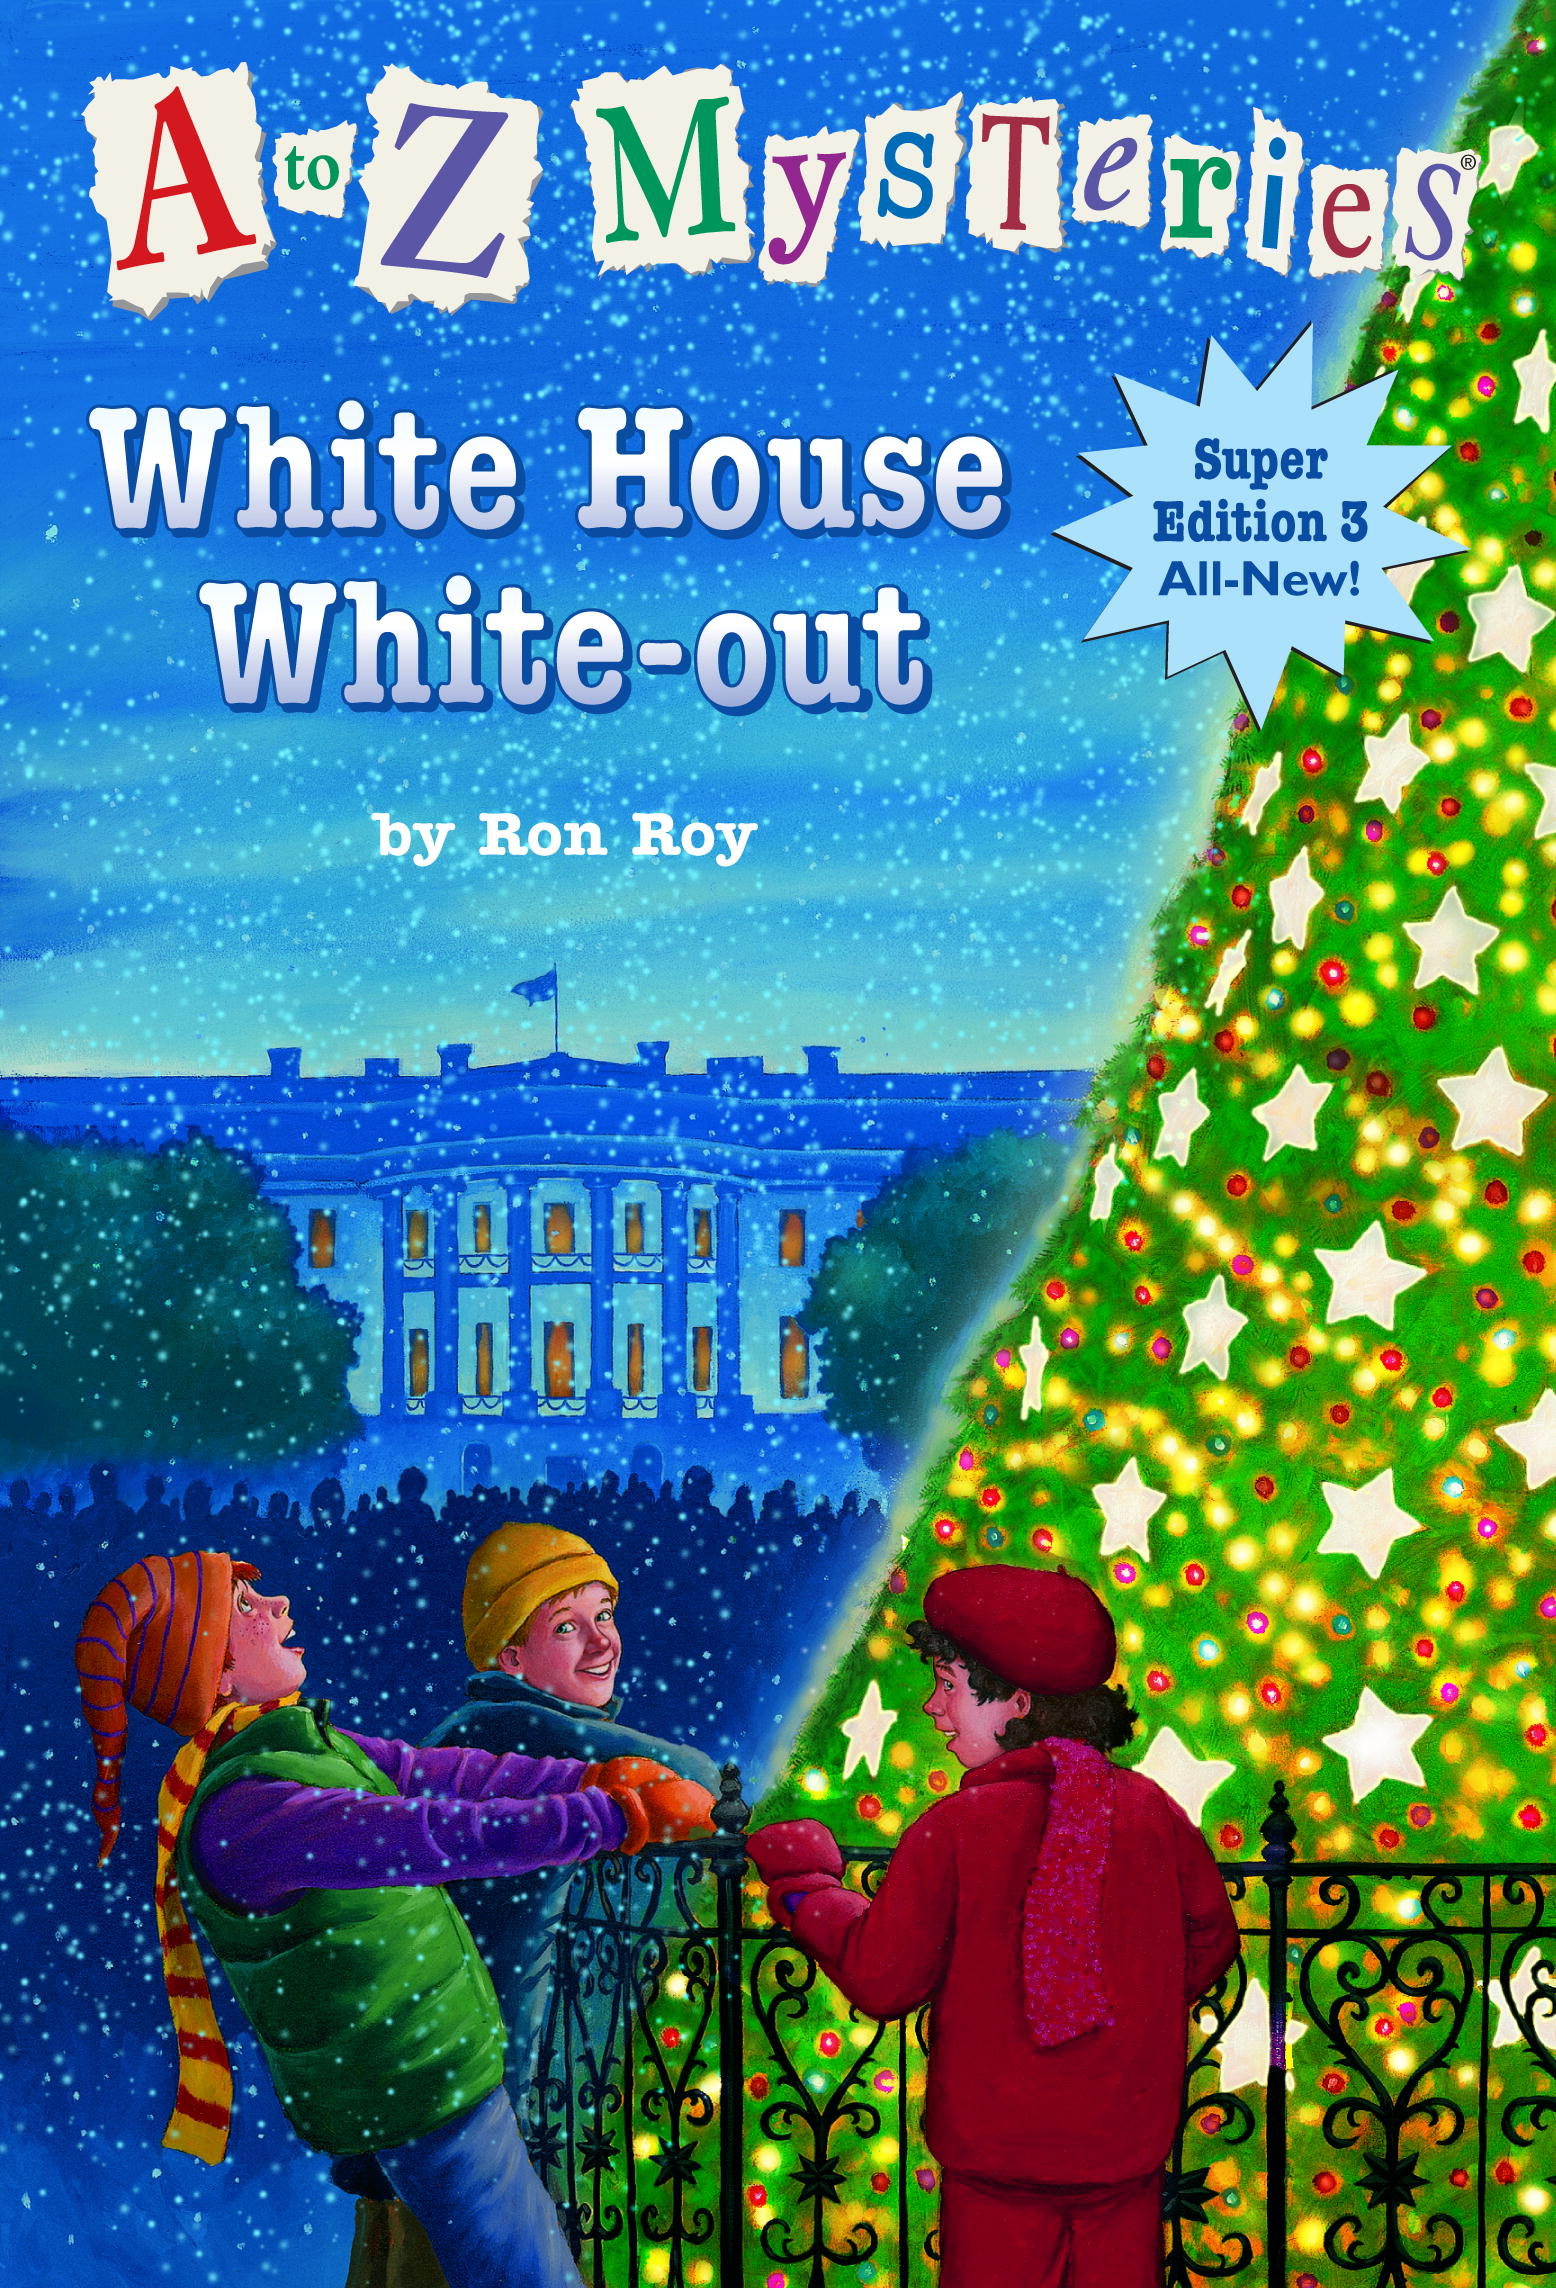 Cover Image: A to Z Mysteries Super Edition 3: White House White-Out